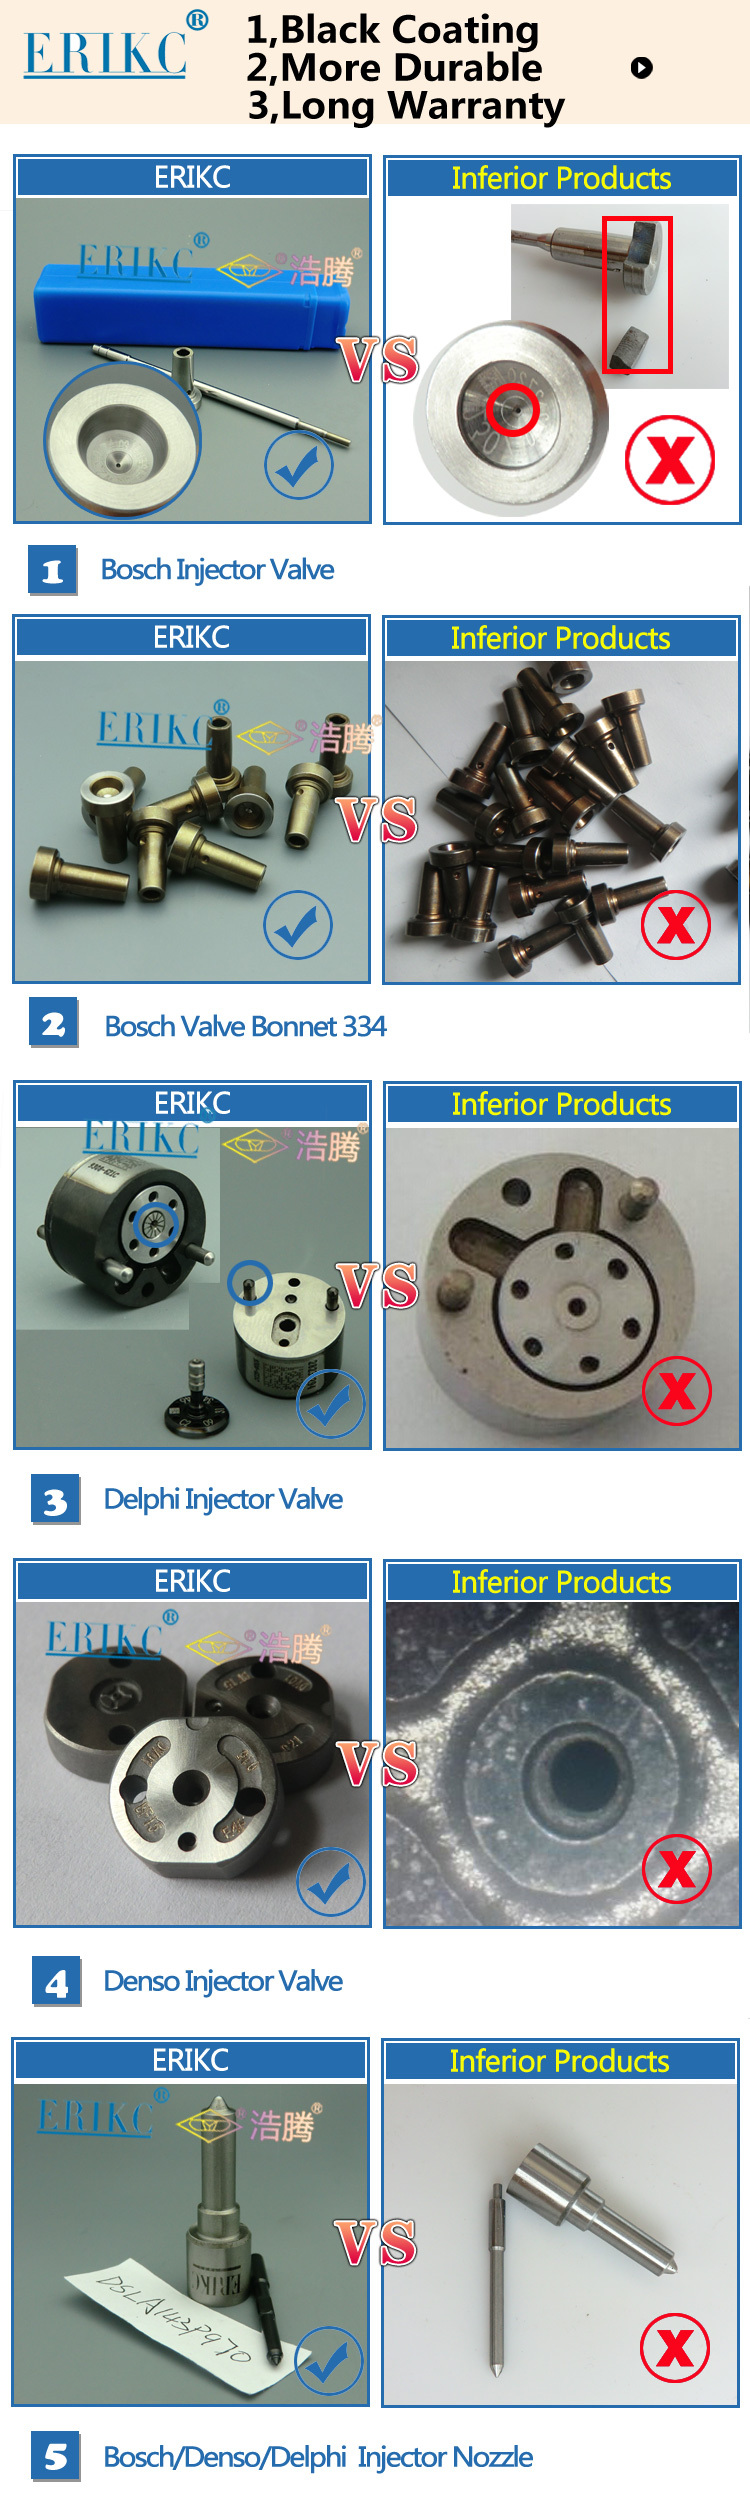 crdi injector tools